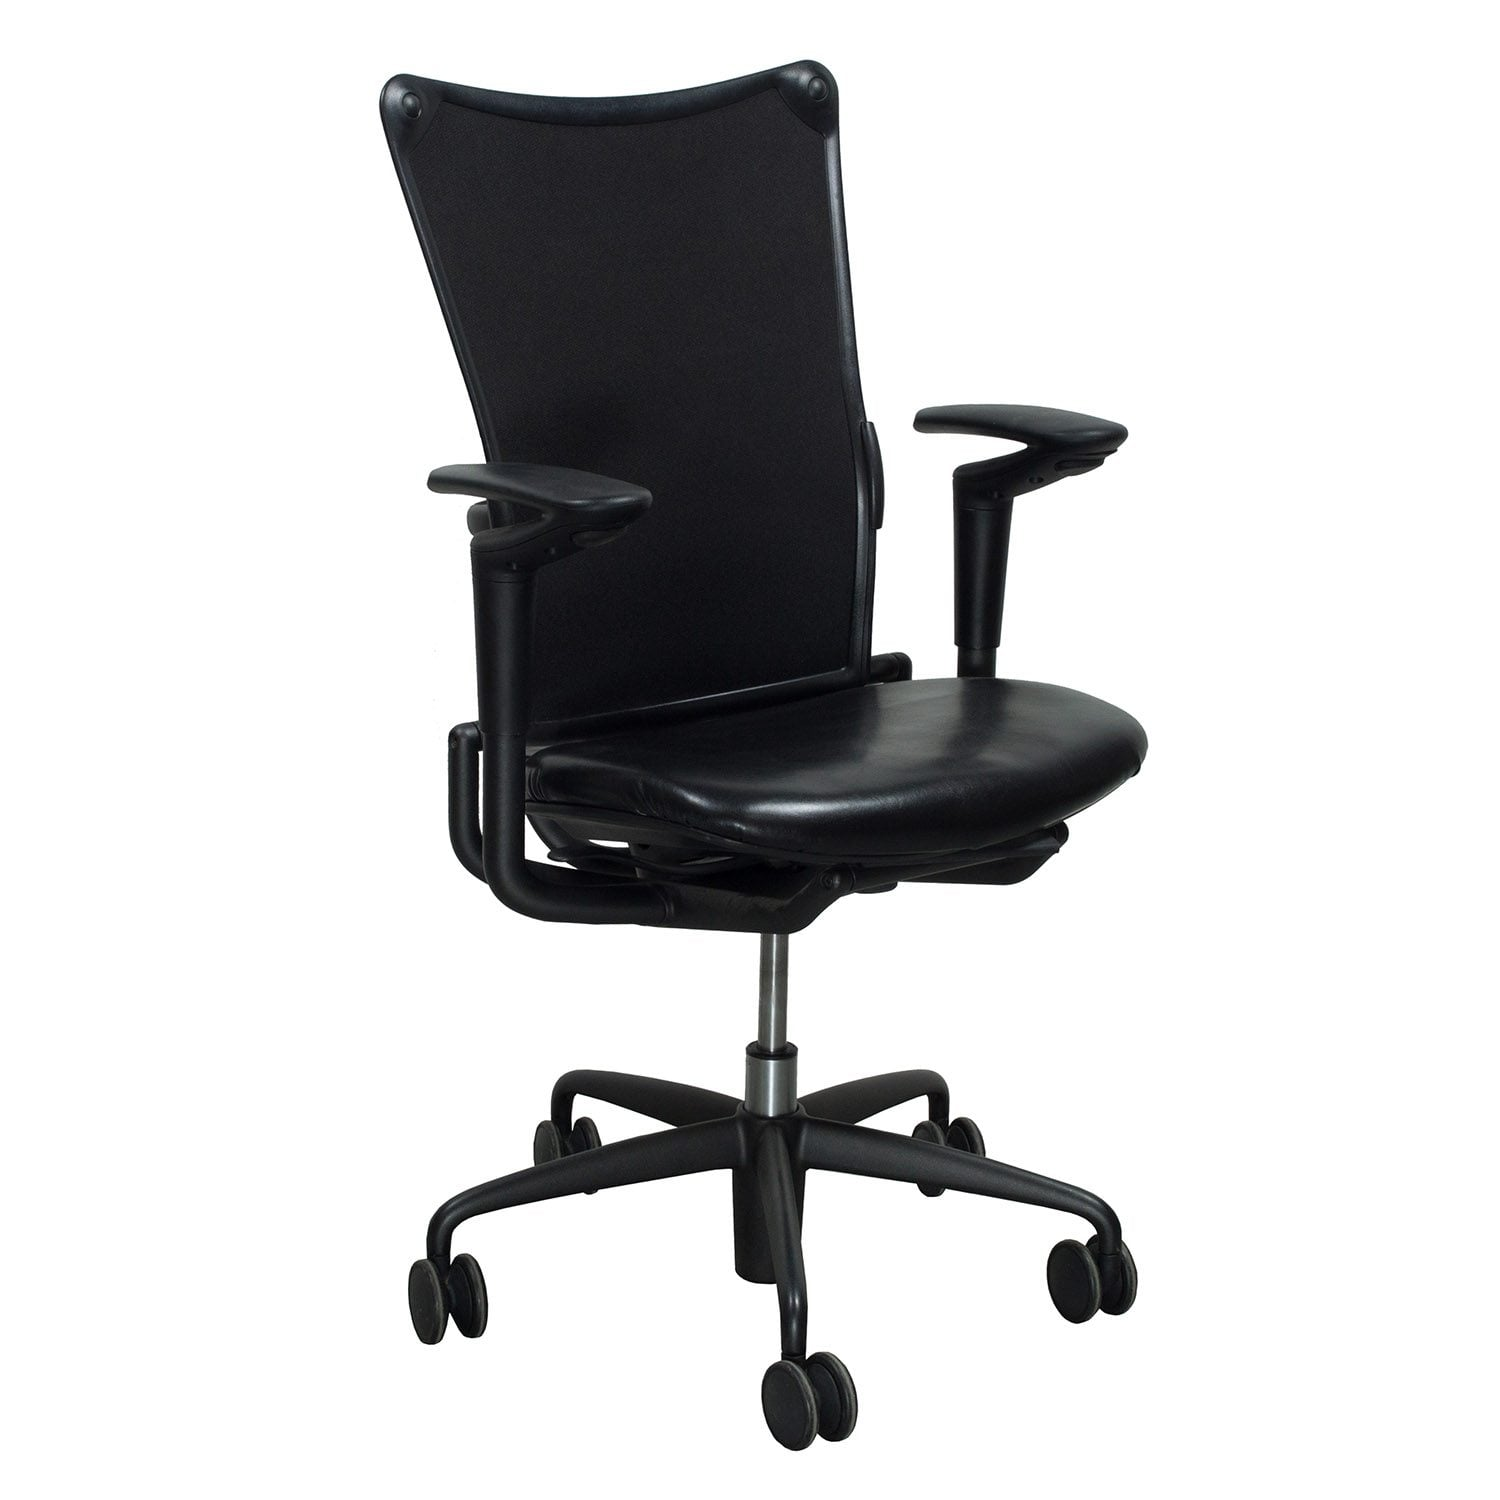 allsteel office chair garden covers seat cushion 19 used task with leather black